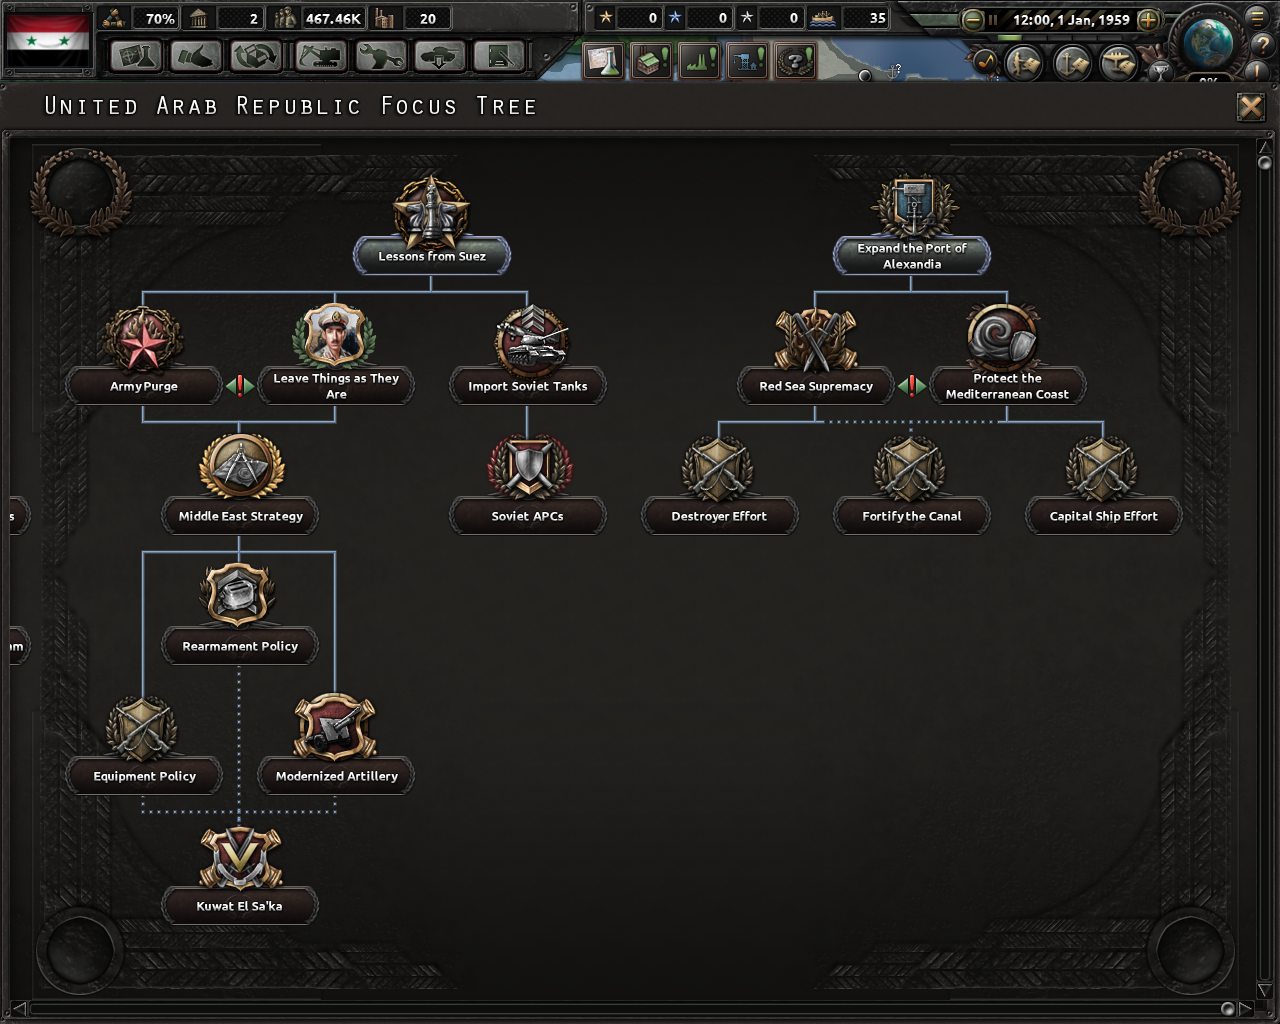 Egypt (UAR) Focus Tree image - Global Alert mod for Hearts of Iron